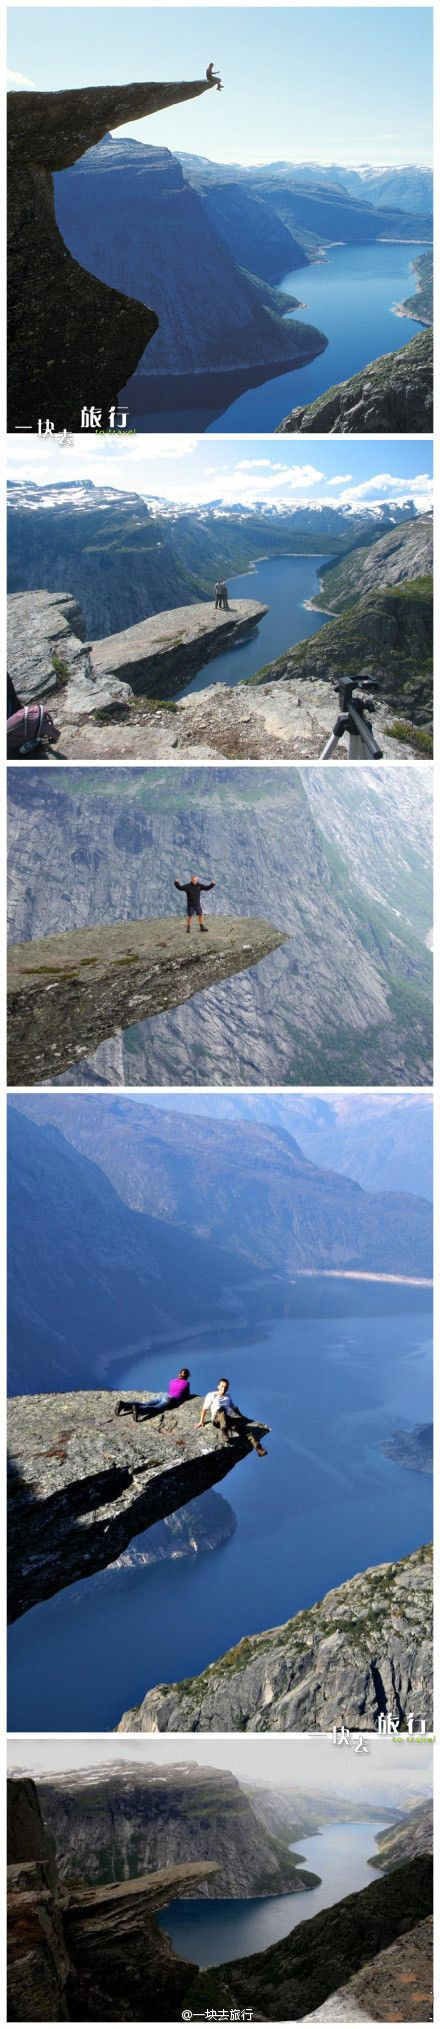 Trolltunga, Hardangerfjord region in Norway. A 10 hours hard hike to get there and back. One of the most spectacular places in Europe.